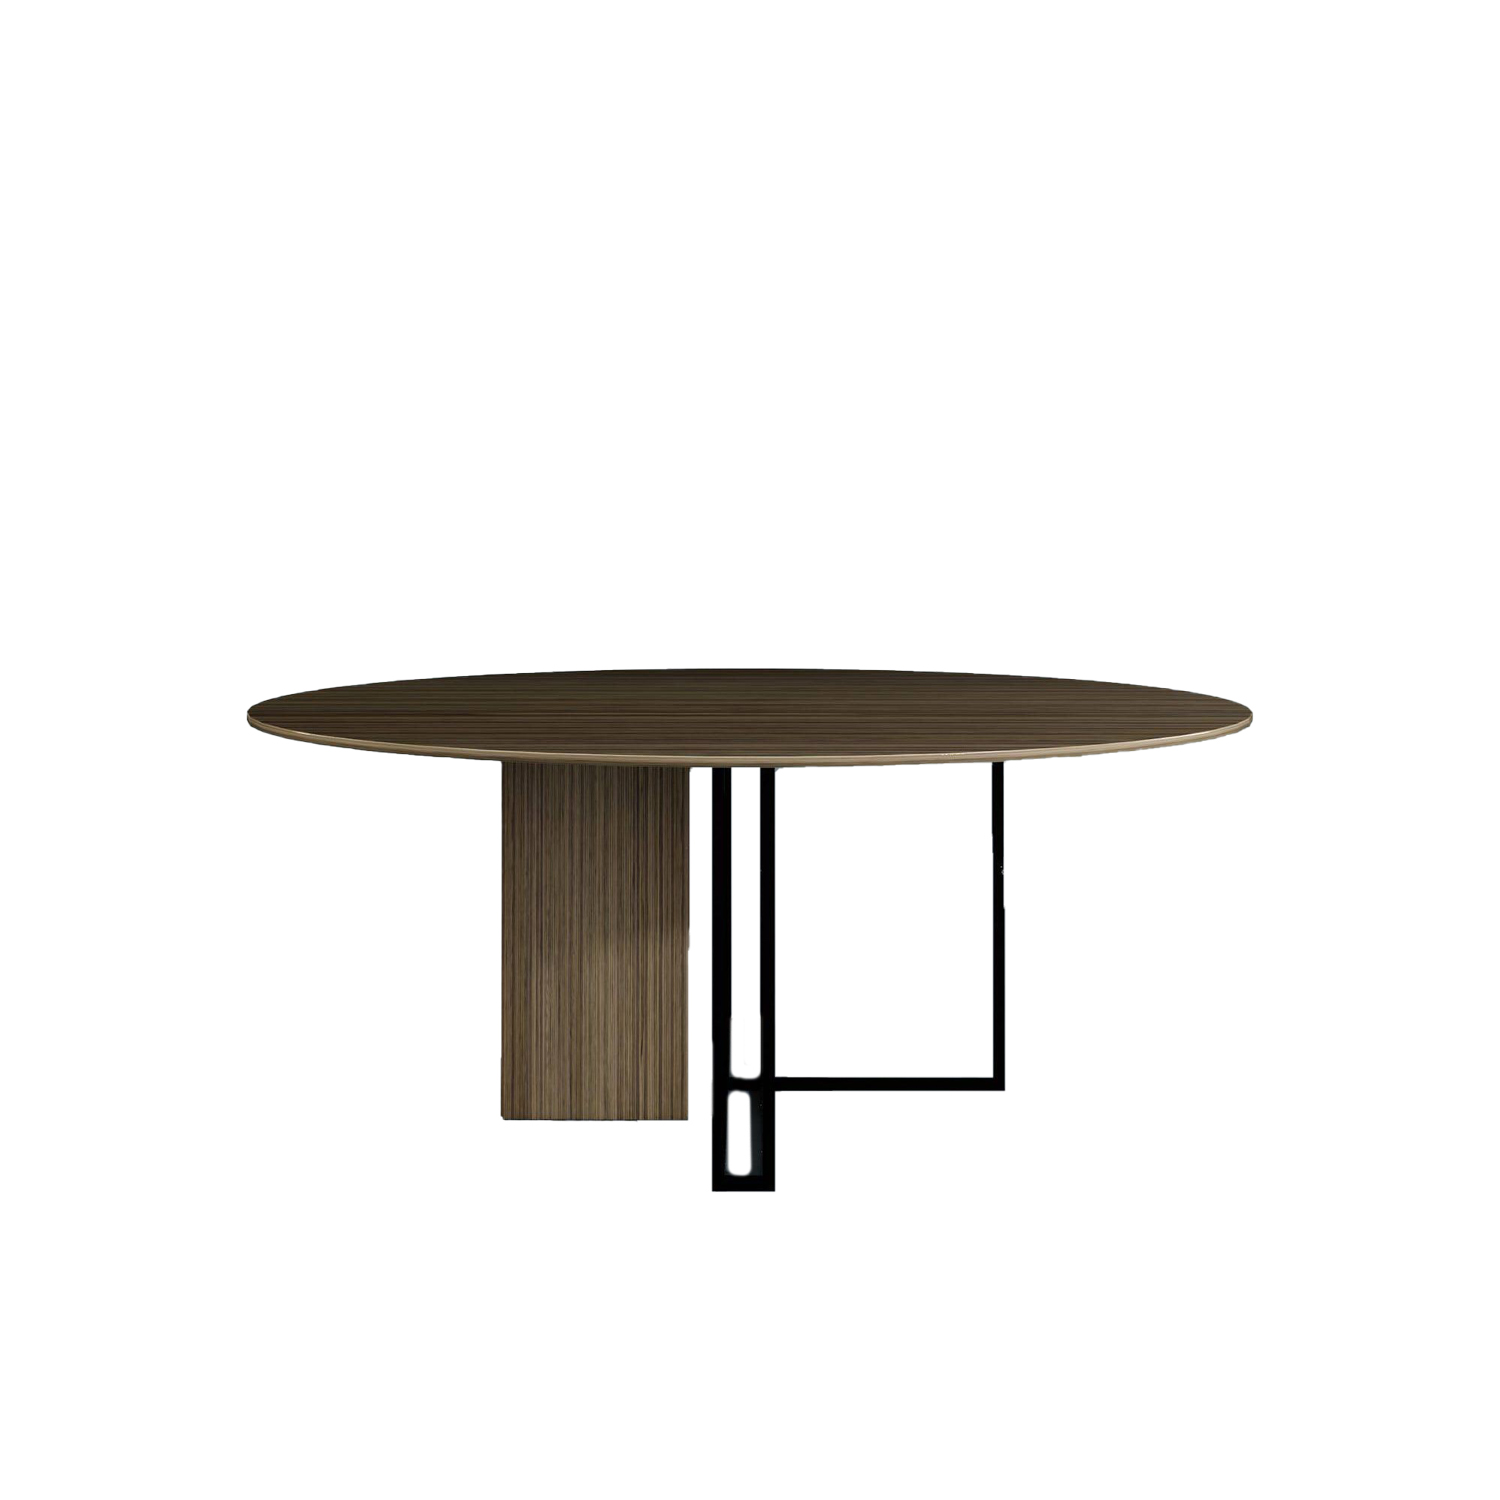 Plinto Round Large Dining Table - Dining tables with metal base with plinth. Tops in different models and dimensions.